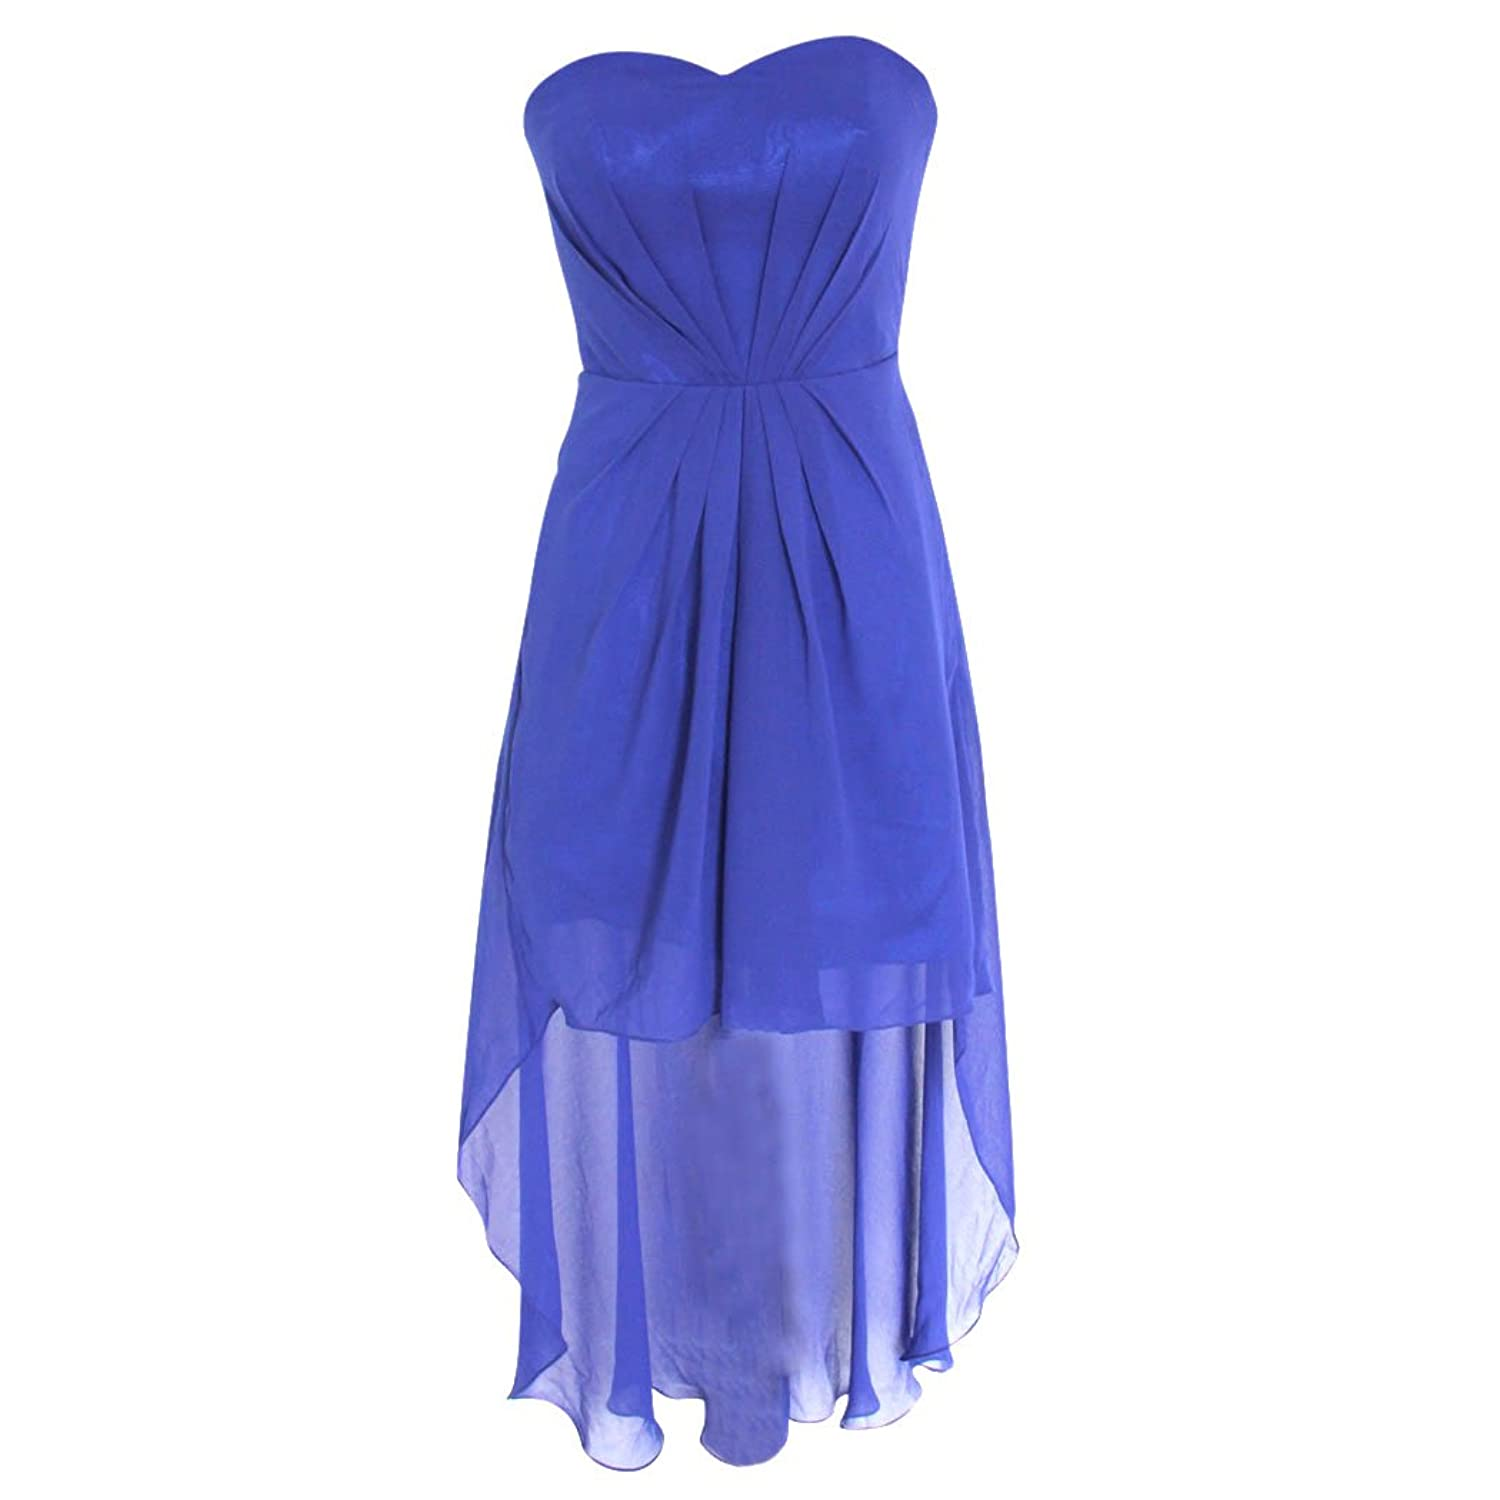 Amazon.com: SZMH Women\'s Royal Blue High Low Prom Dress For Party ...